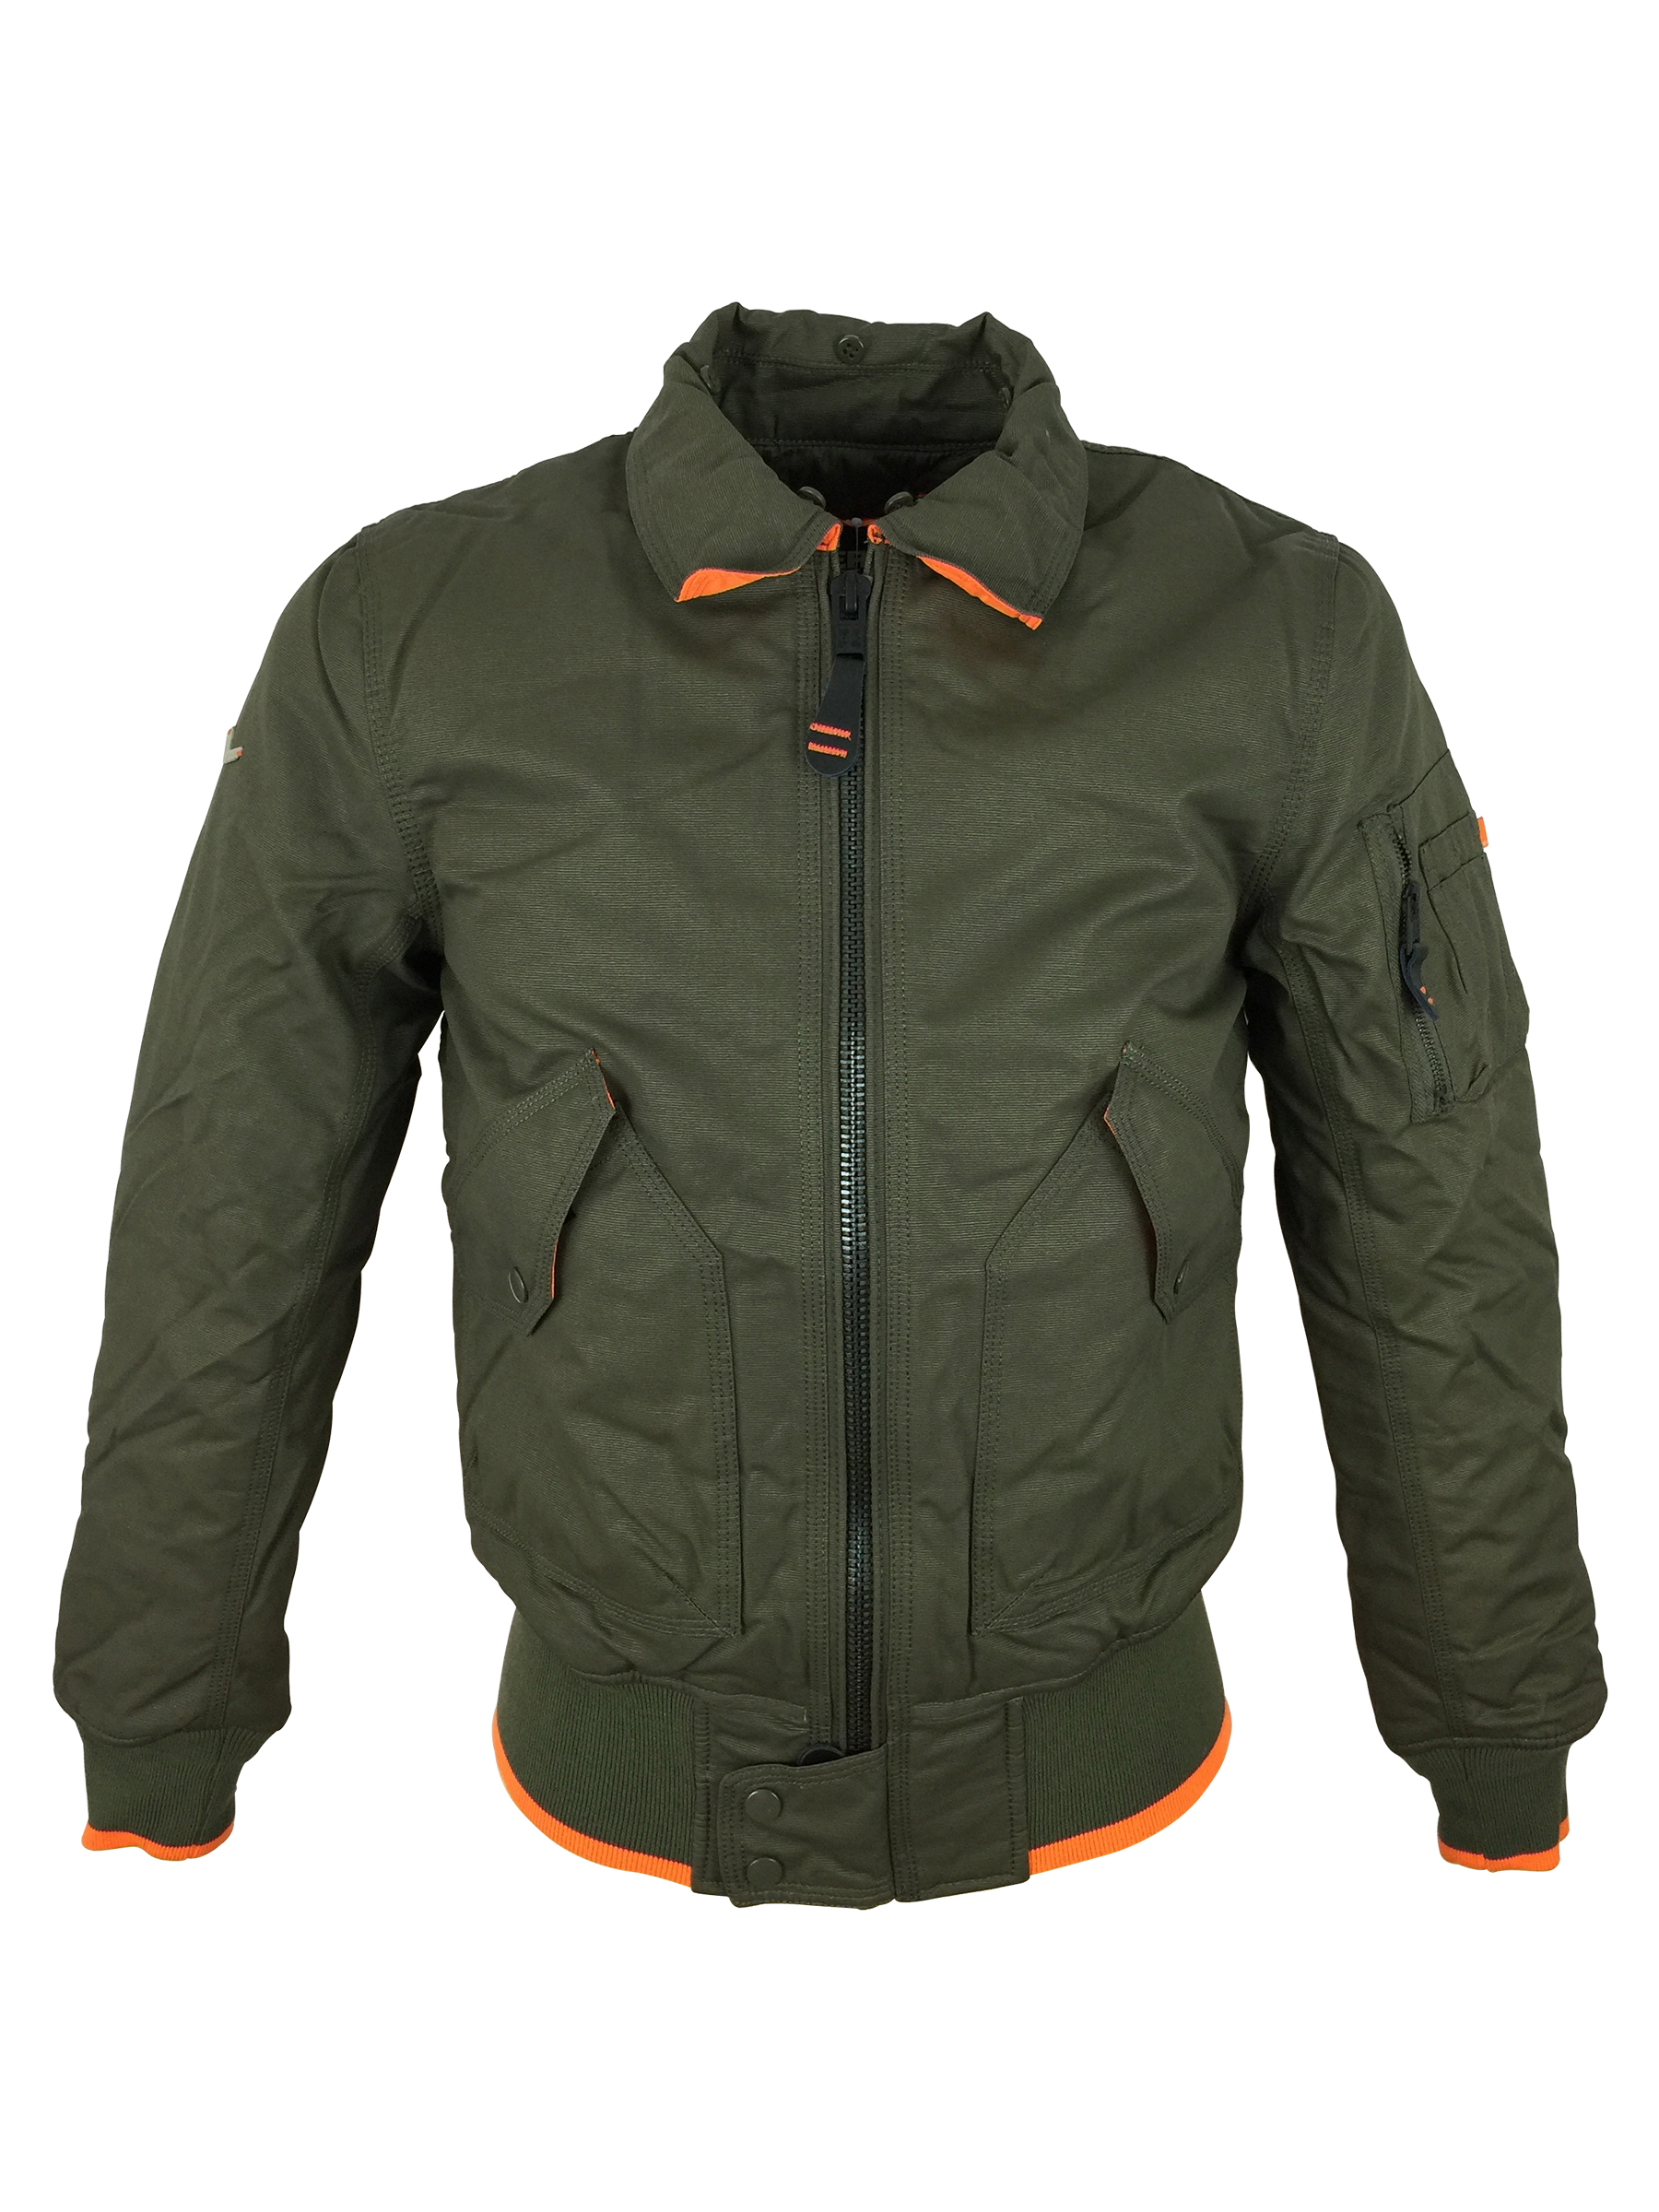 Discover men's jackets & coats on sale at ASOS. Choose from the latest collection of jackets & coats for men and shop your favorite items on sale. your browser is not supported. To use ASOS, we recommend using the latest versions of Chrome, Firefox, Safari or Internet Explorer ASOS DESIGN muscle fit bomber jacket with sleeve zip in khaki.